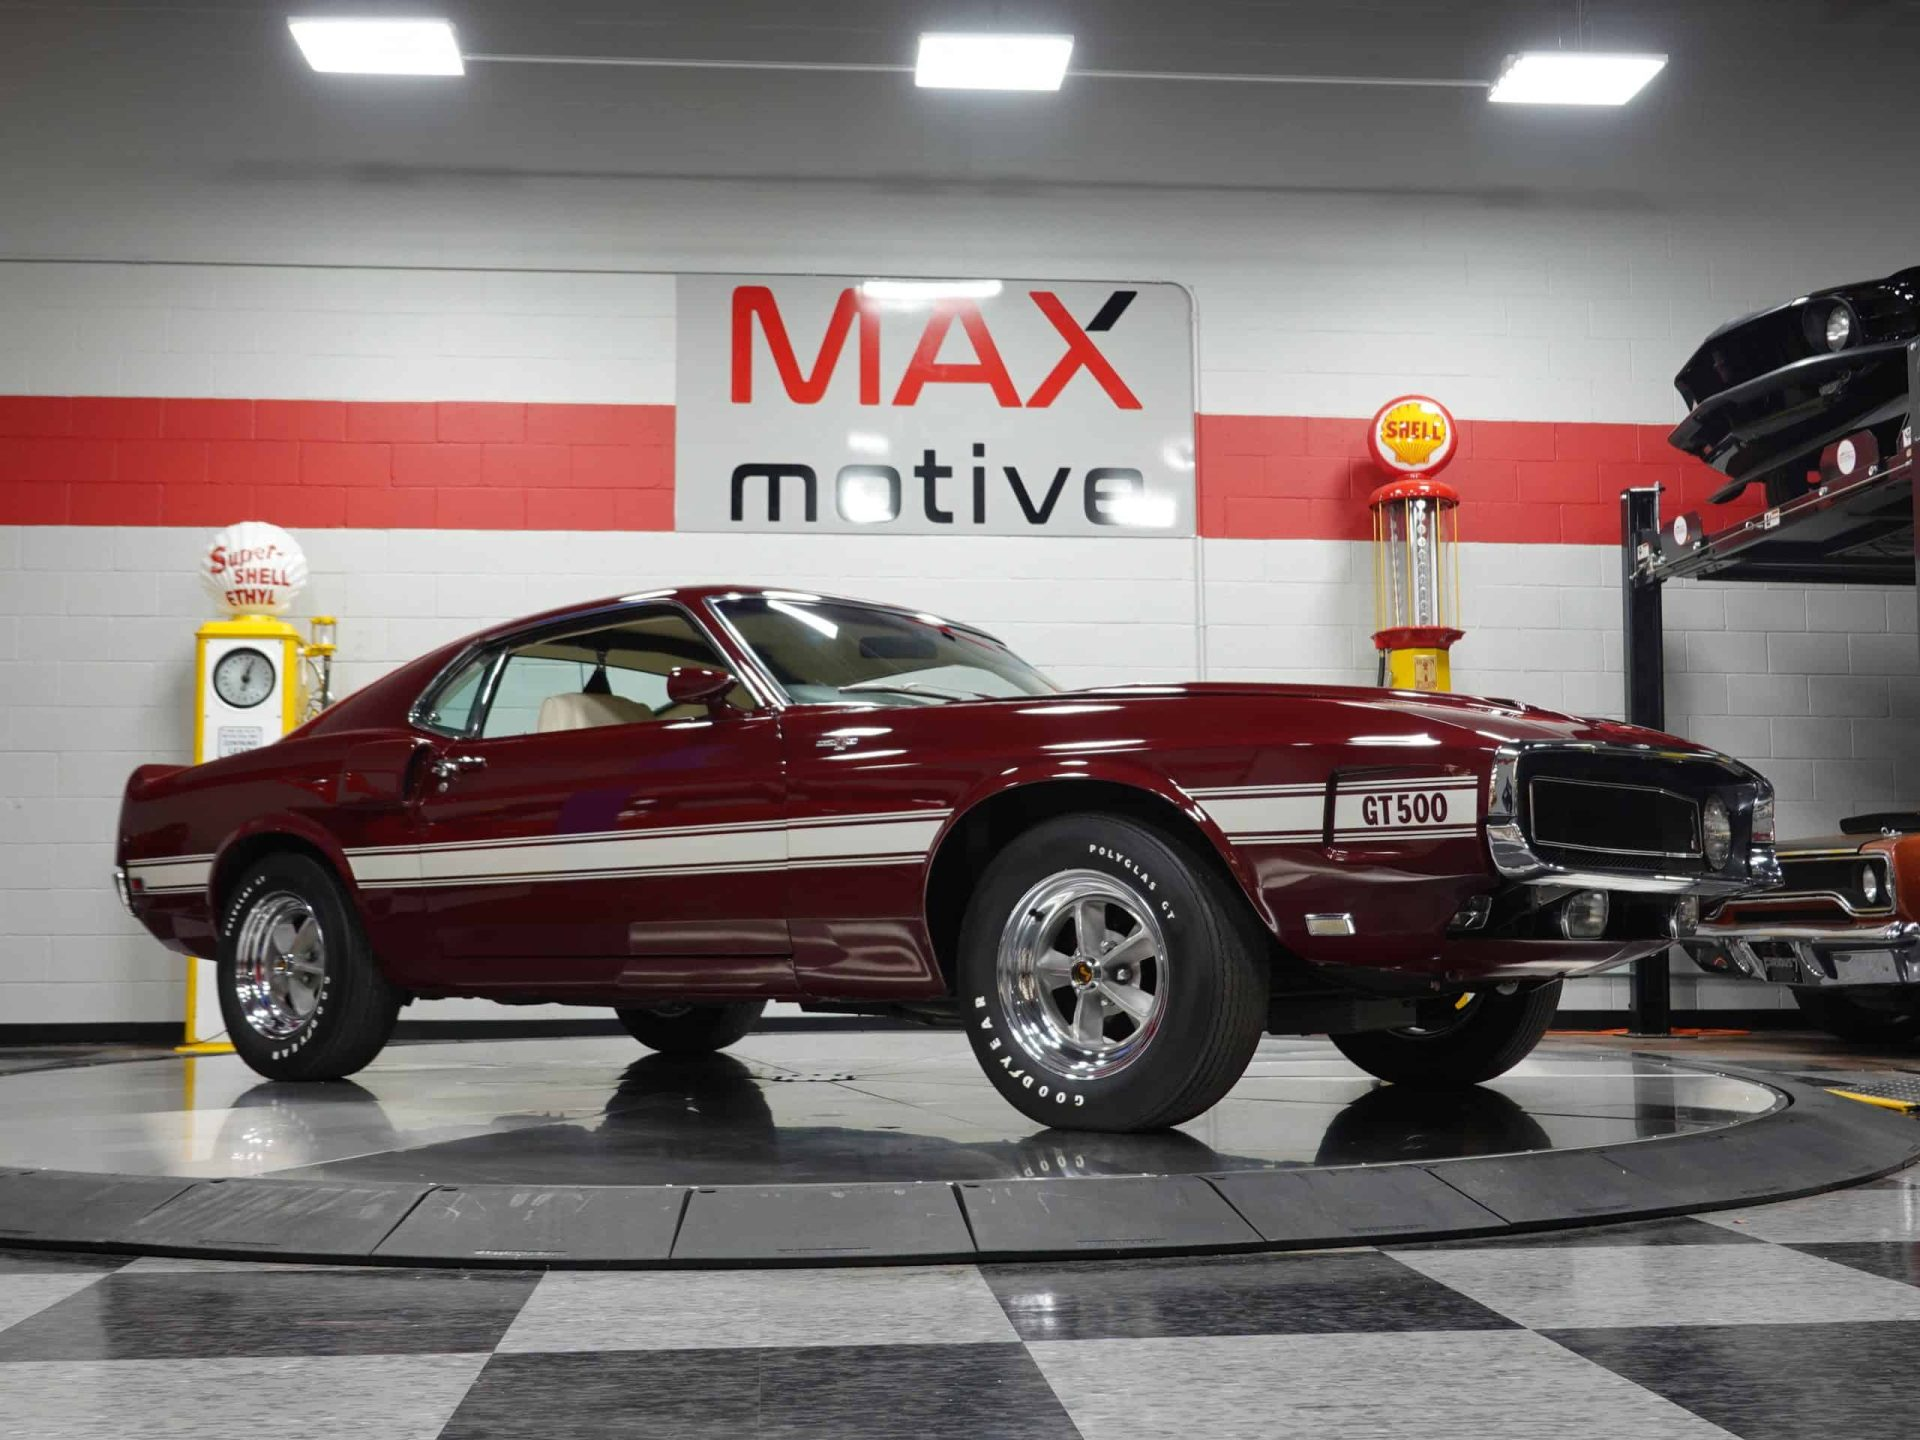 1969 Ford Shelby Mustang GT500 - U0373